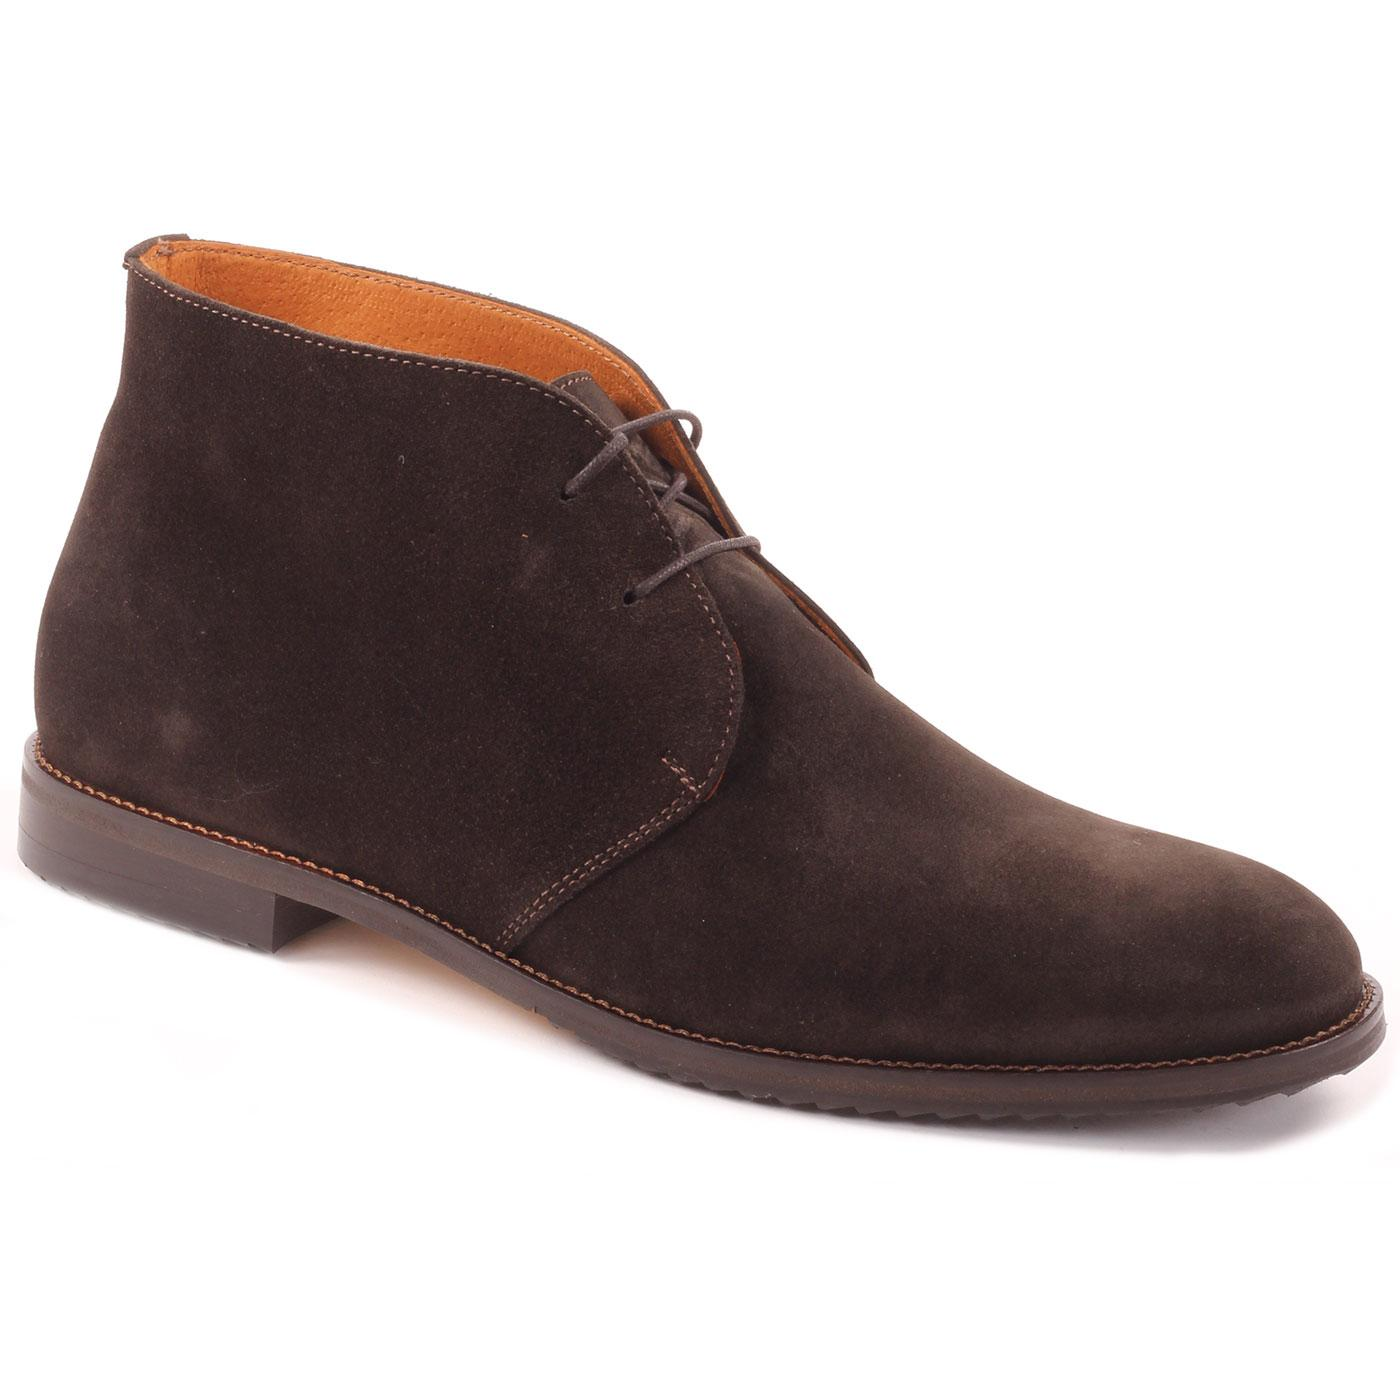 LACUZZO Men's Retro Mod Suede Chukka Boots (Brown)